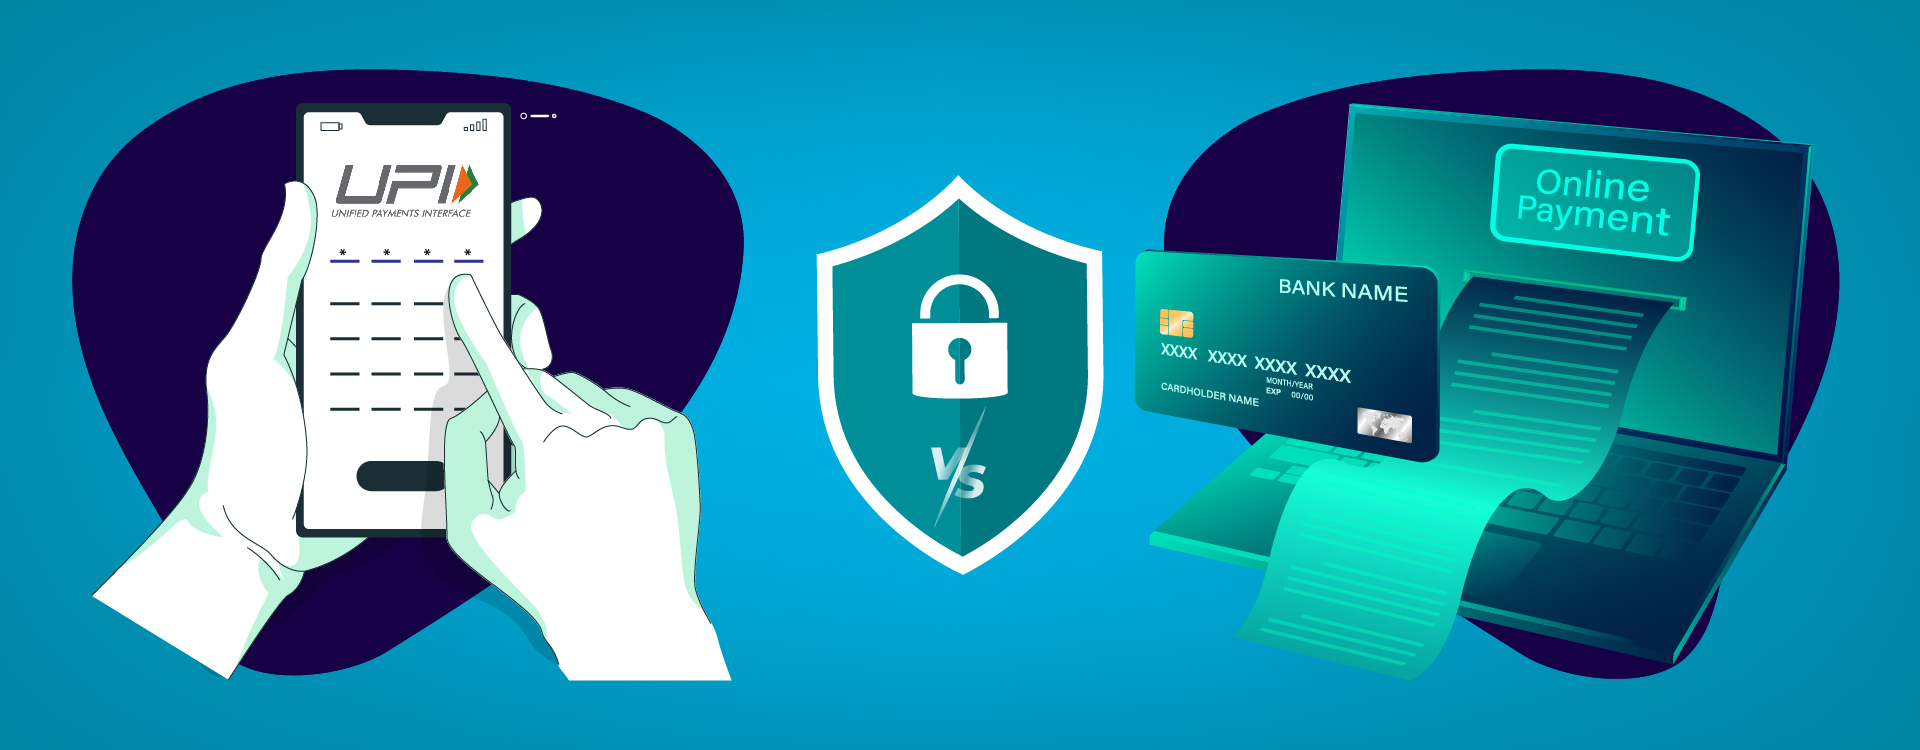 Payment gateway is safer than UPI payments since it follows a number of security compliances.